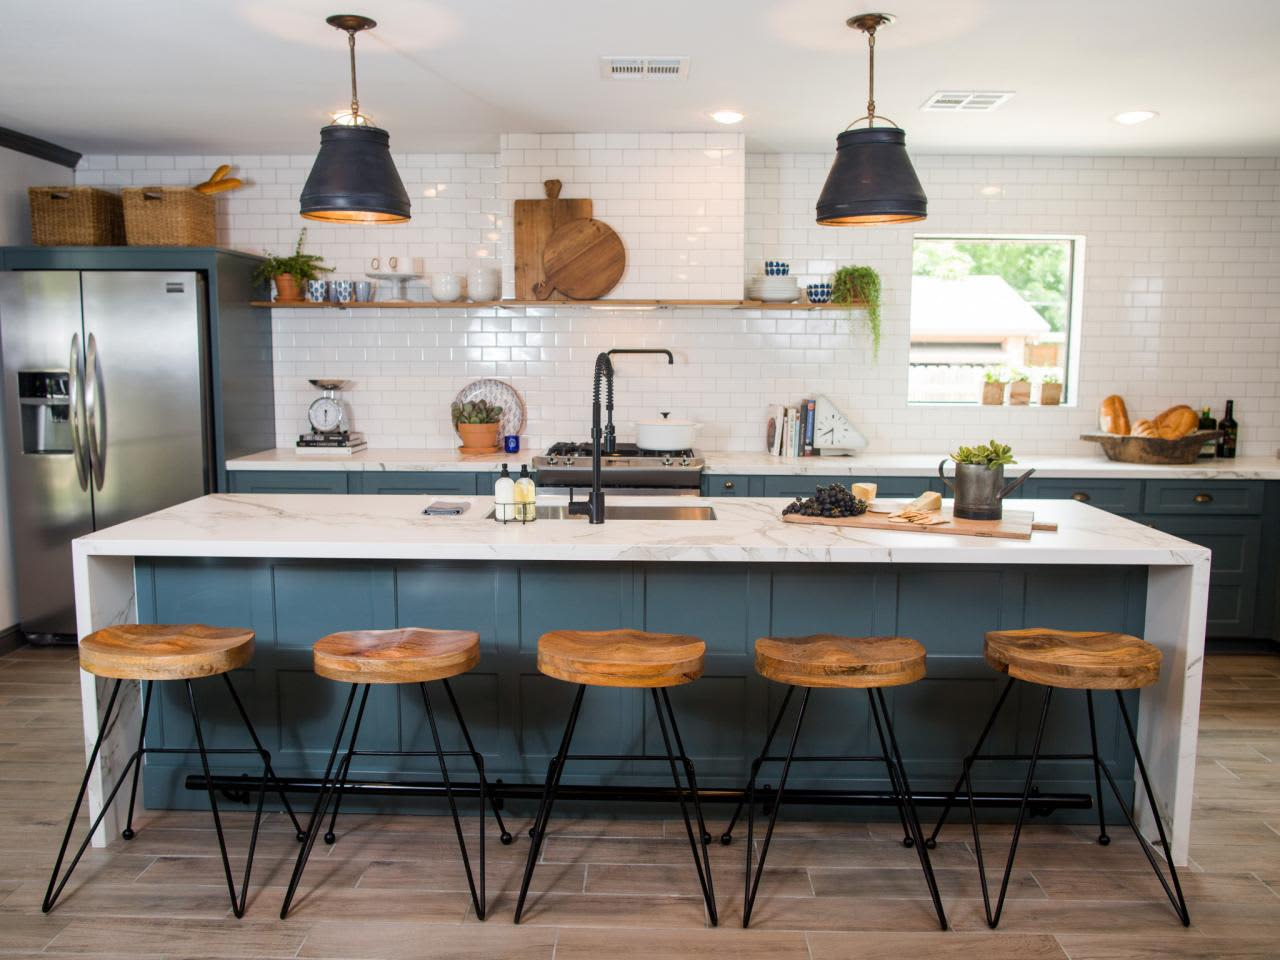 5 Essential Elements In Every Fixer Upper Kitchen